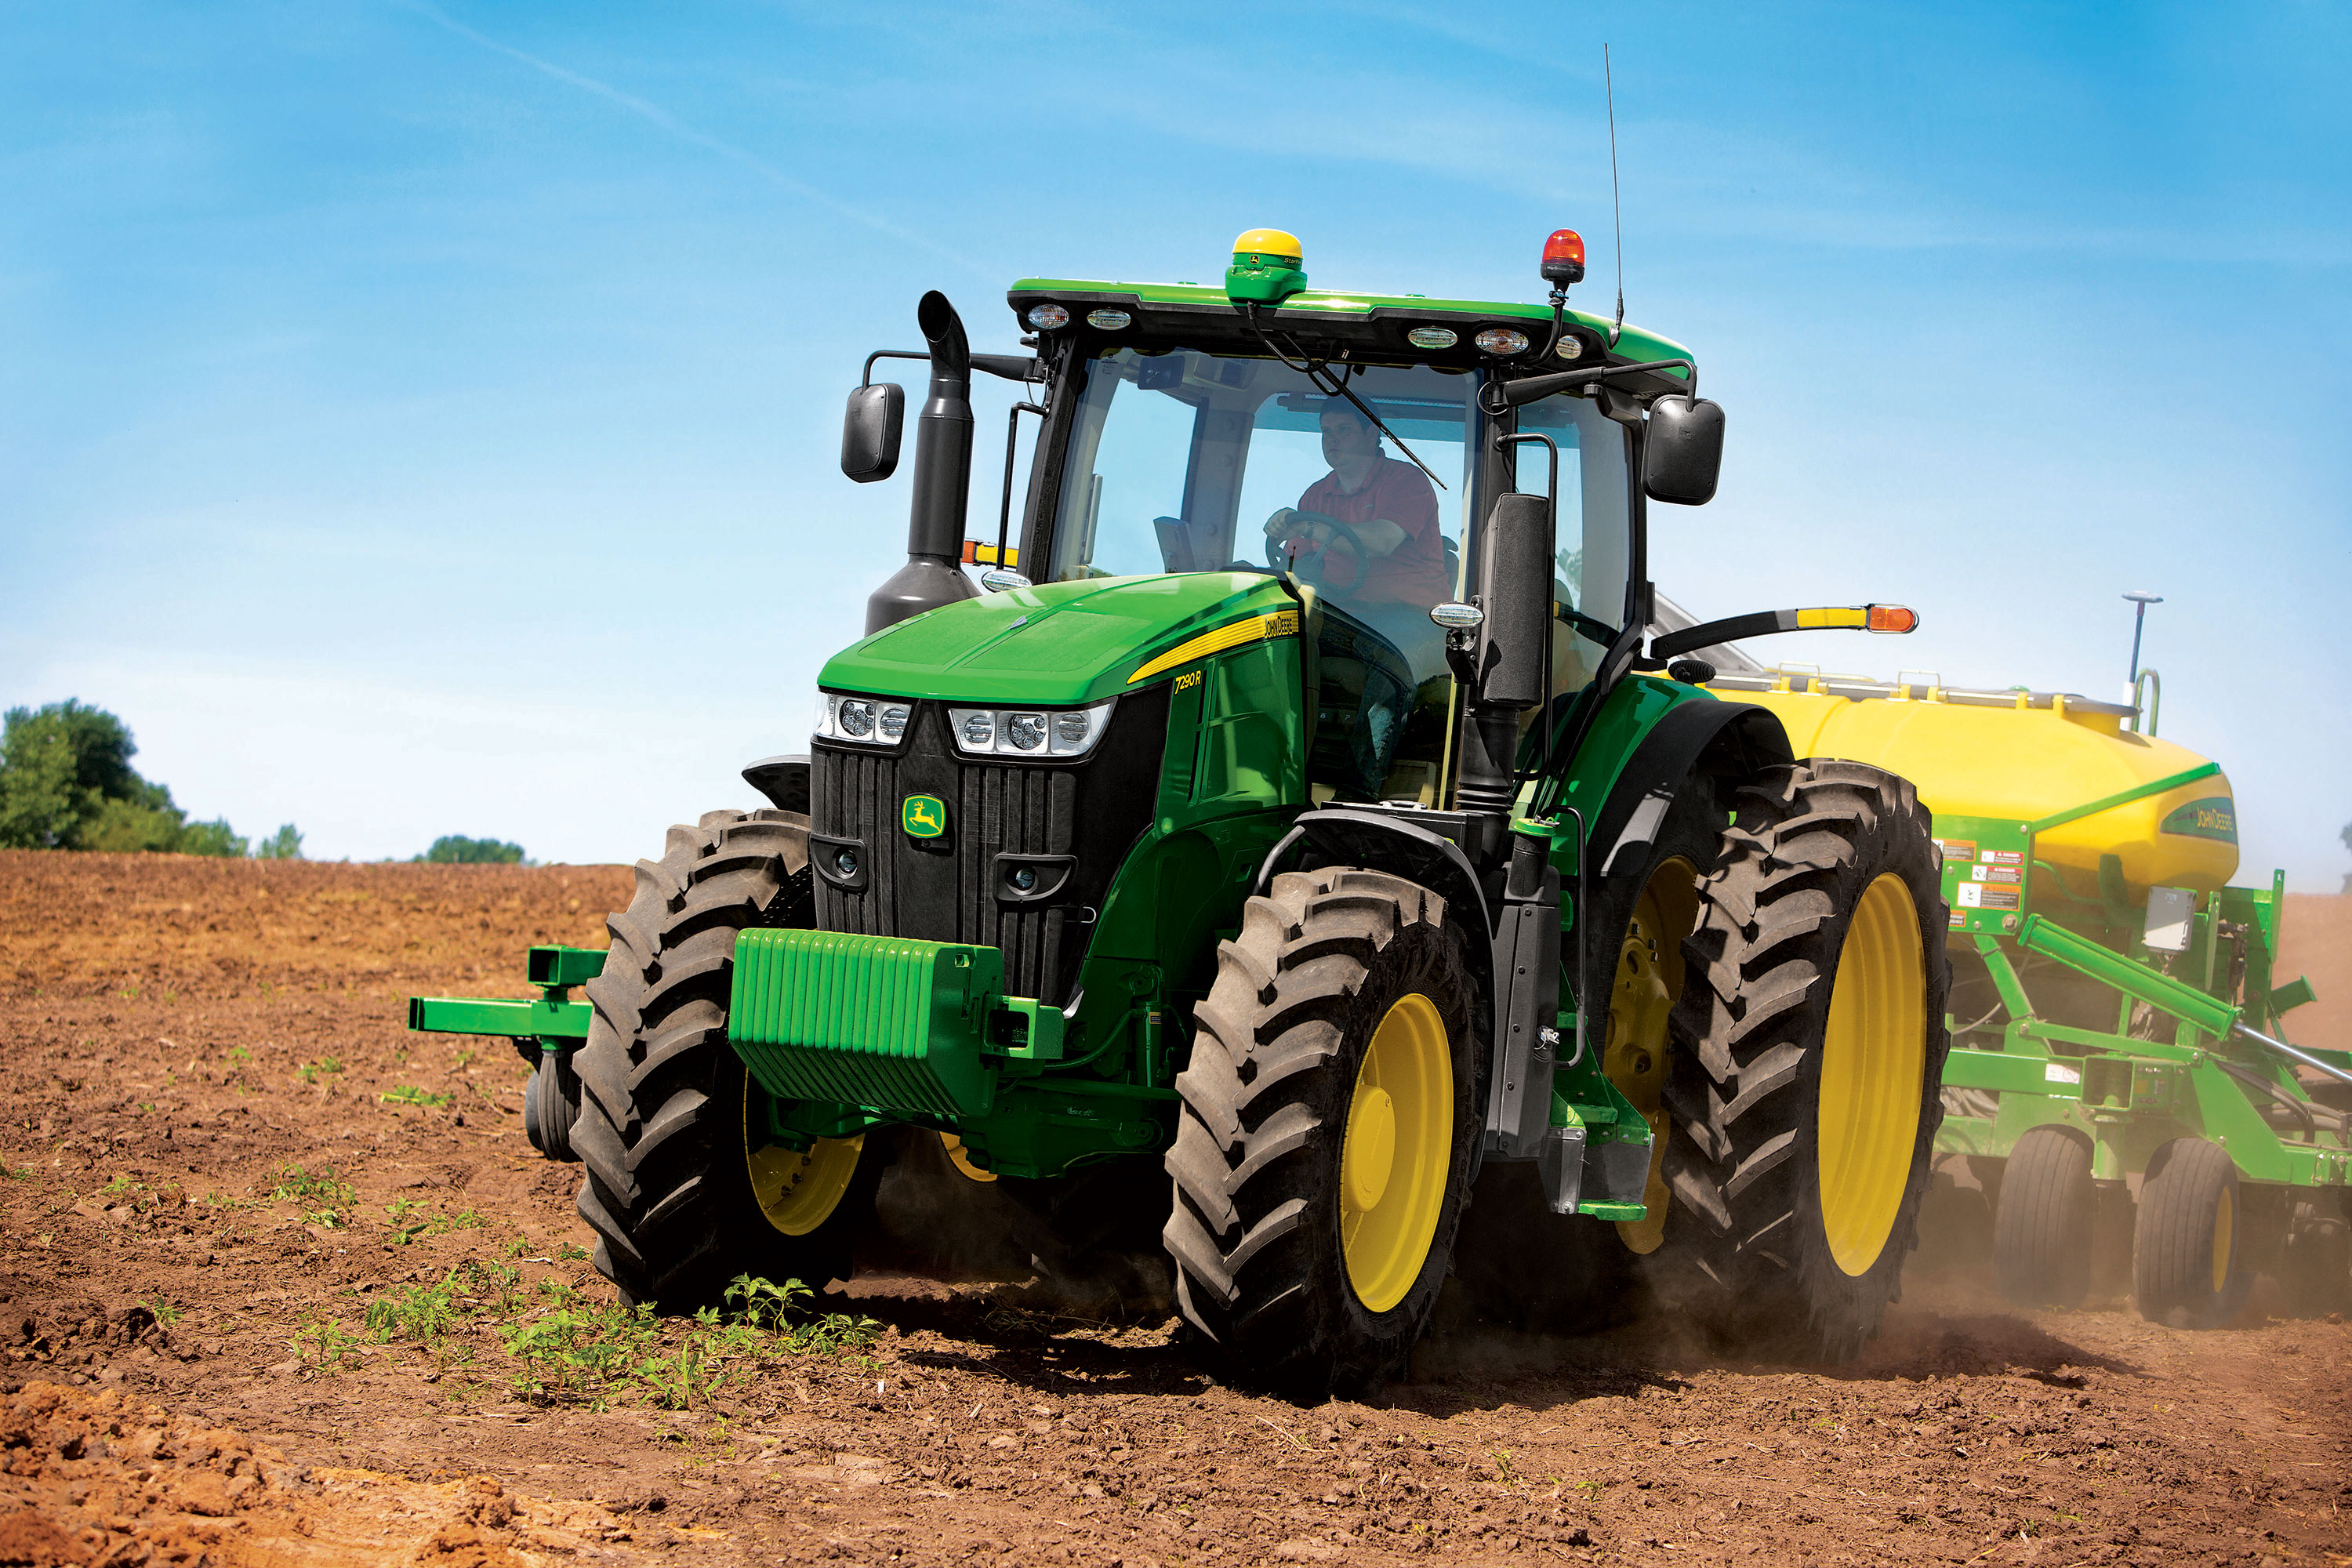 New John Deere 7R Series